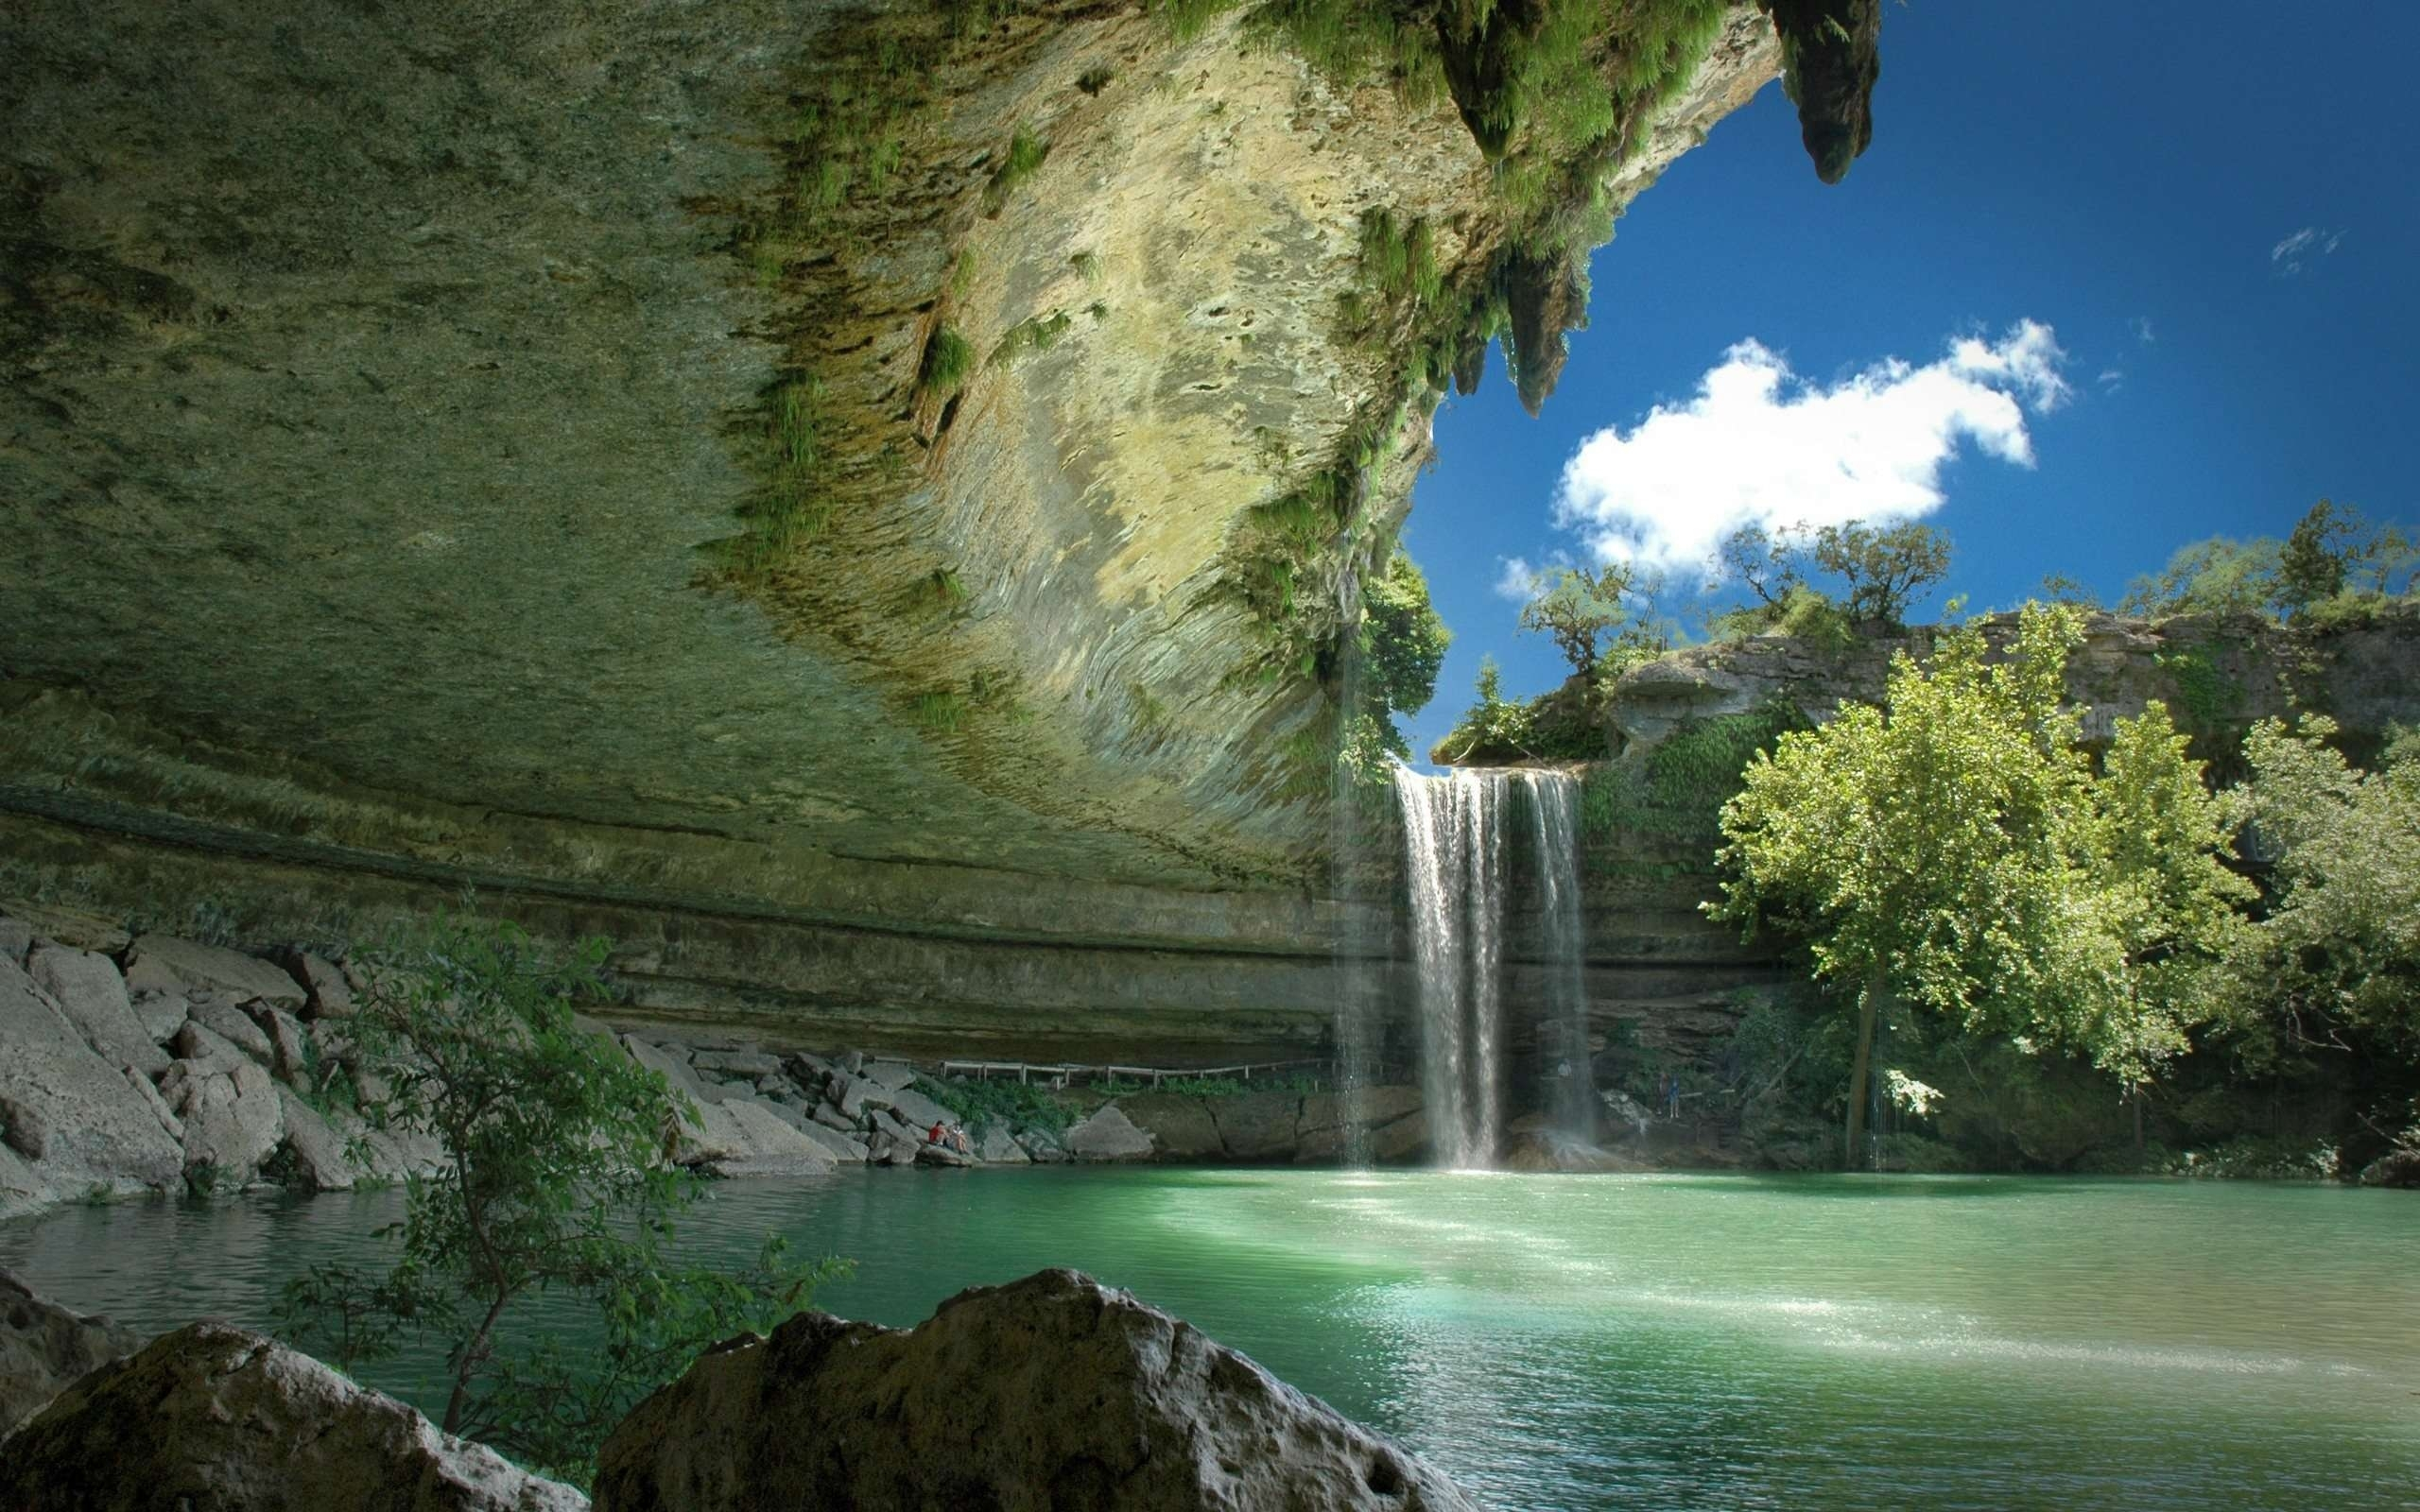 wallpaper nature high resolution on widescreen hd images for